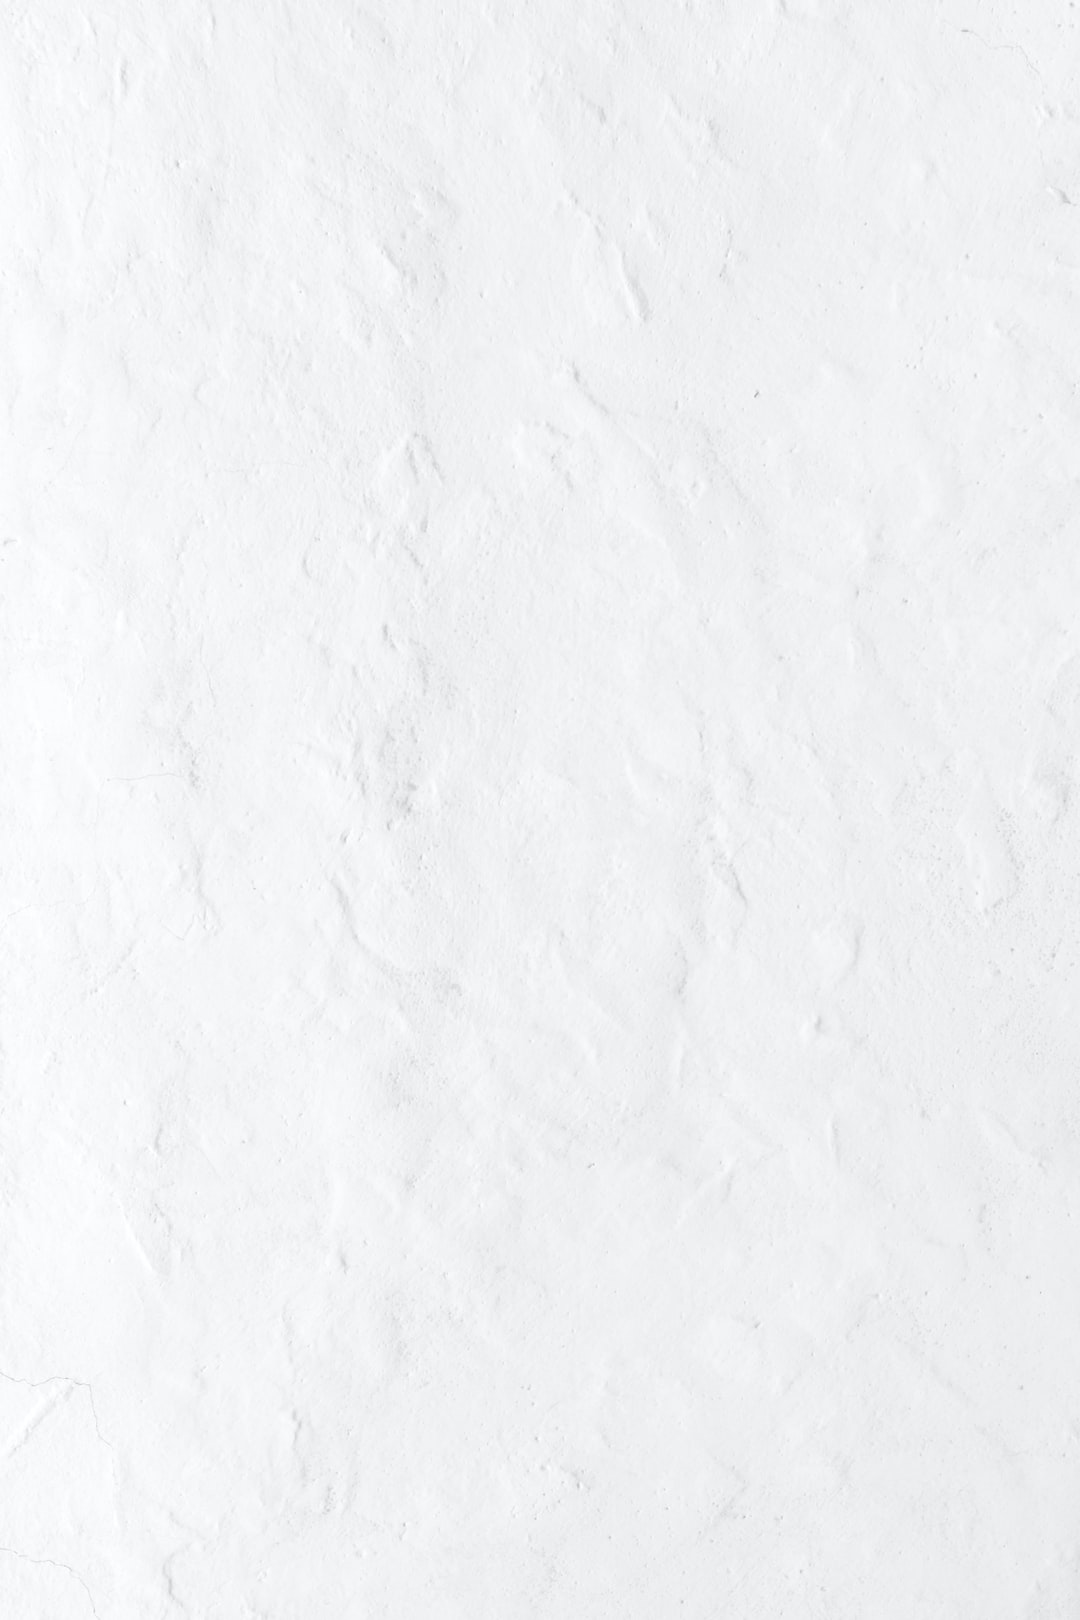 900 White Background Images Download Hd Backgrounds On